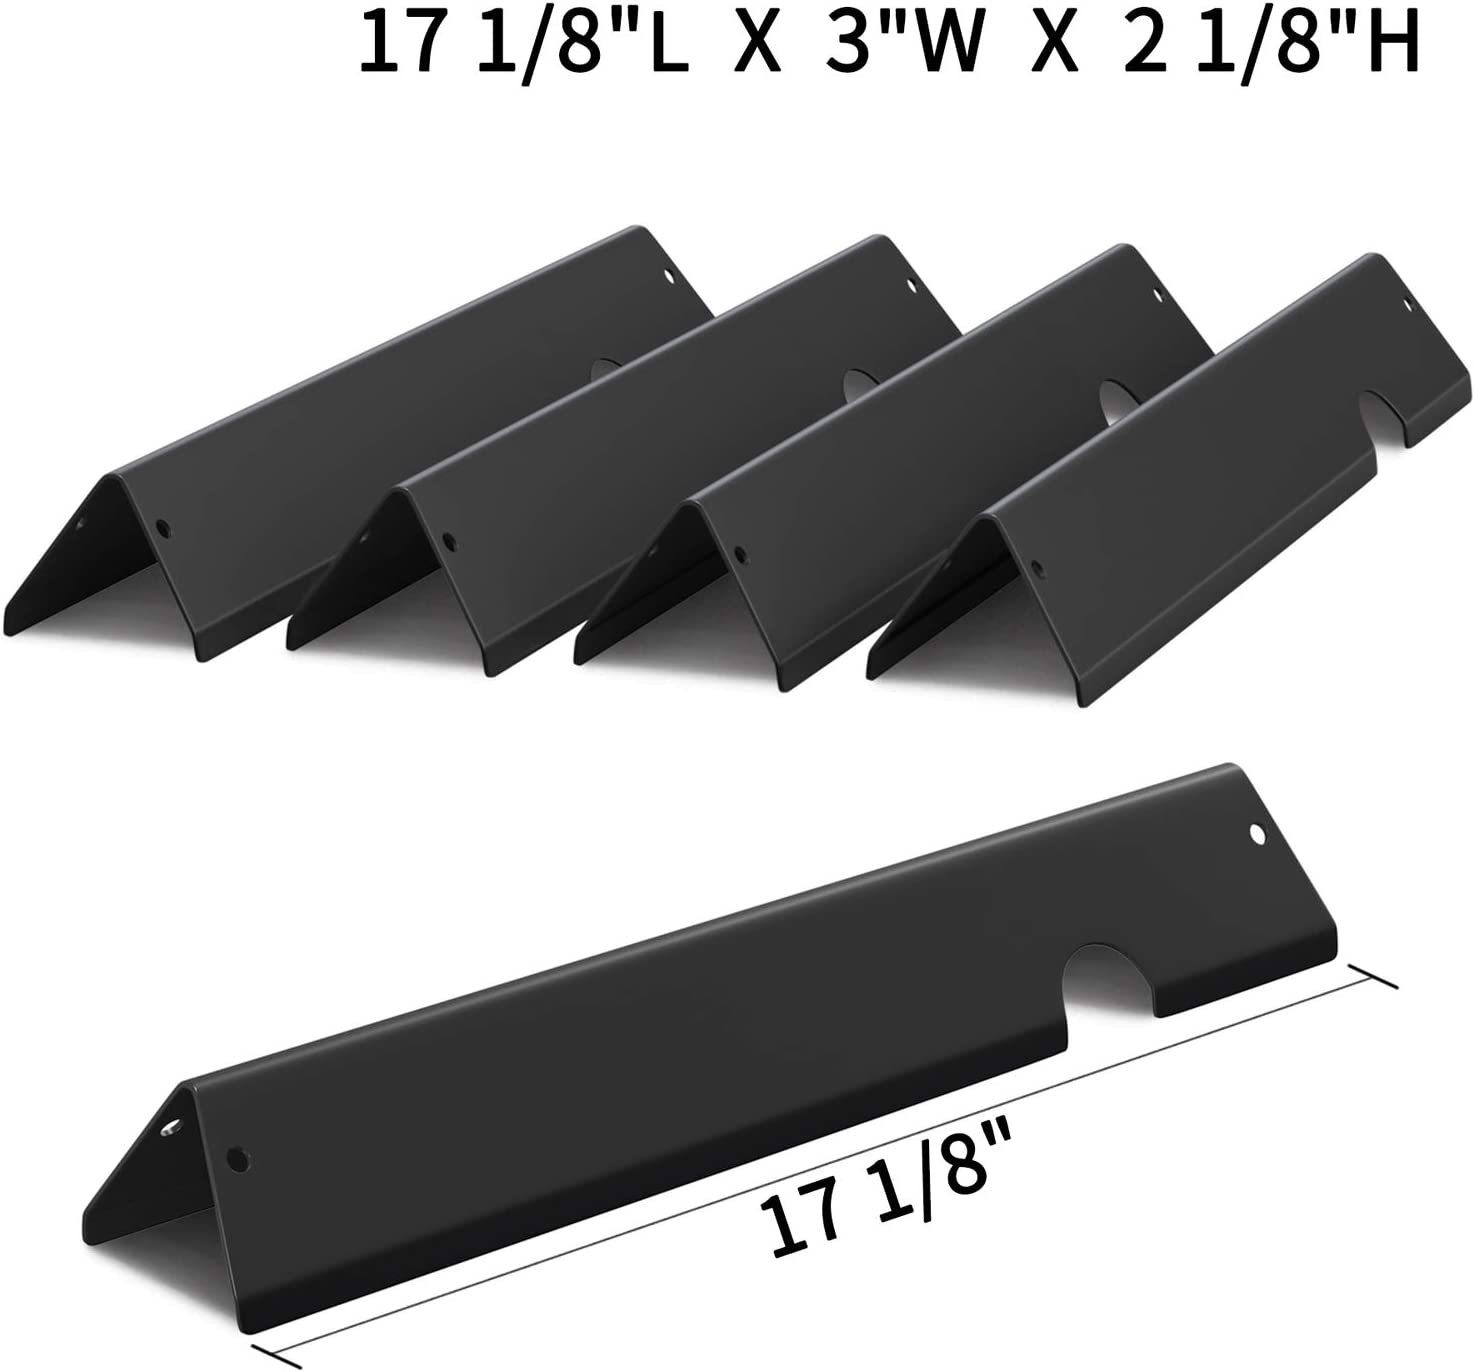 X Home 66032/66795 Porcelain-Enameled Flavorizer Bars for Weber Genesis II 300 Series Gas Grill, Set of 5